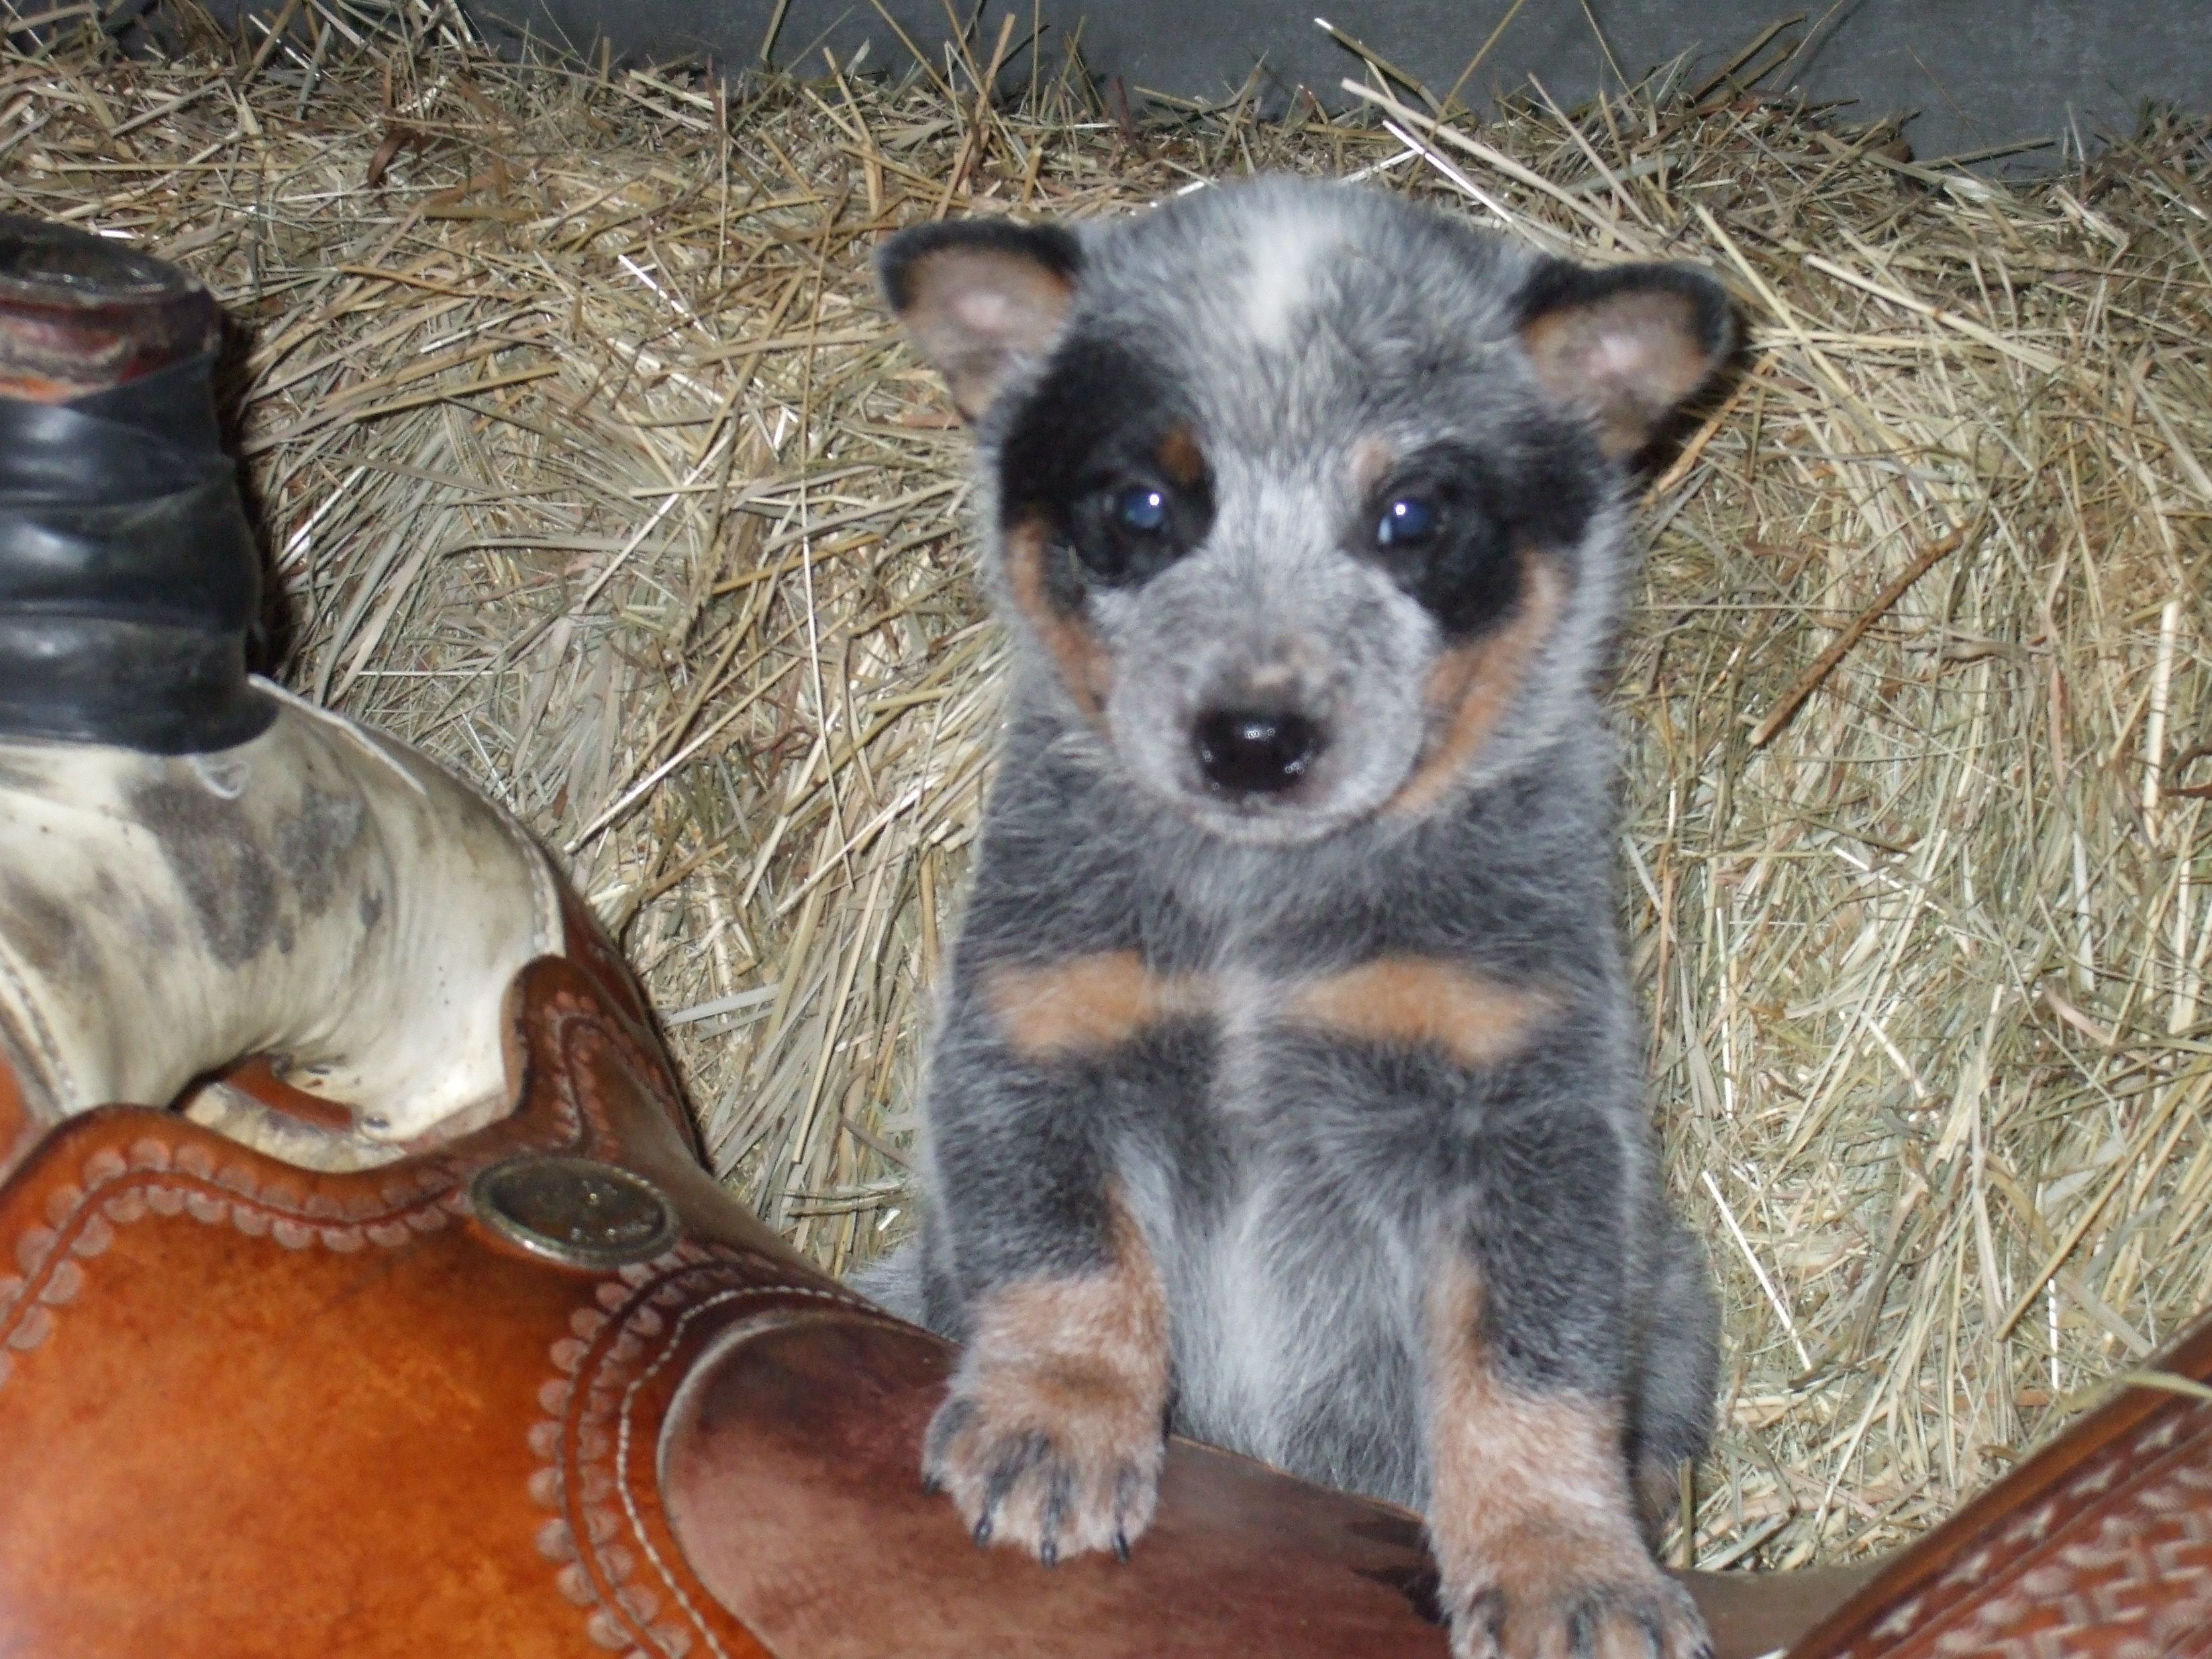 Blue Heeler Puppy Lets Go Chase Some Cattle Cattle Dogs Rule Cattle Dogs Rule Blue Heeler Puppies Heeler Puppies